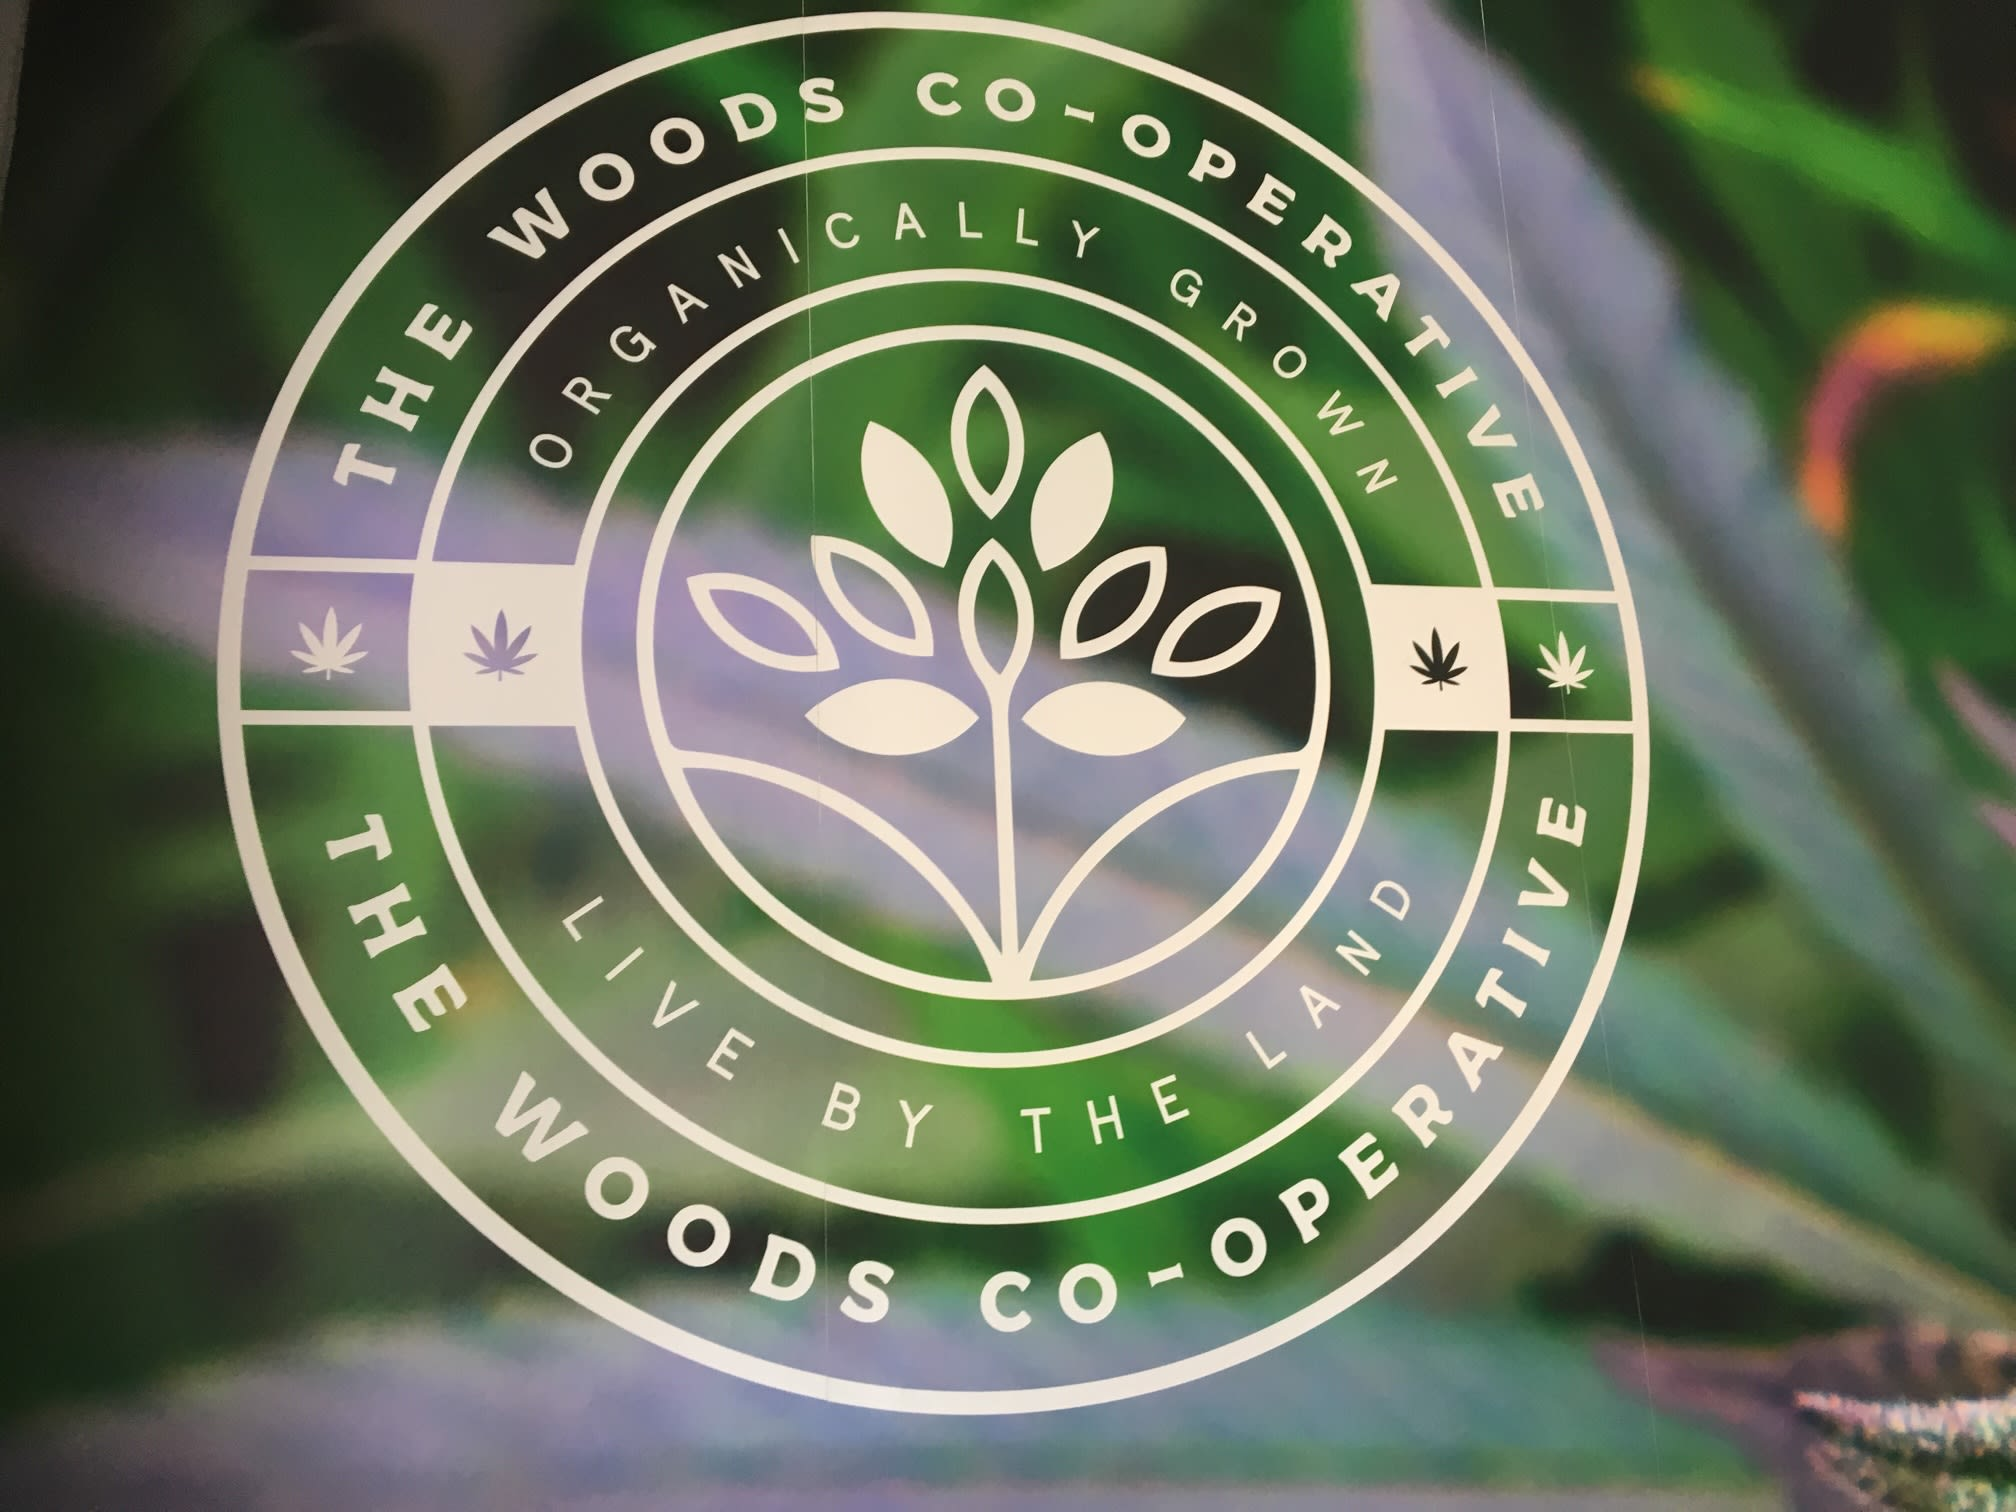 Images The Woods Co-Op